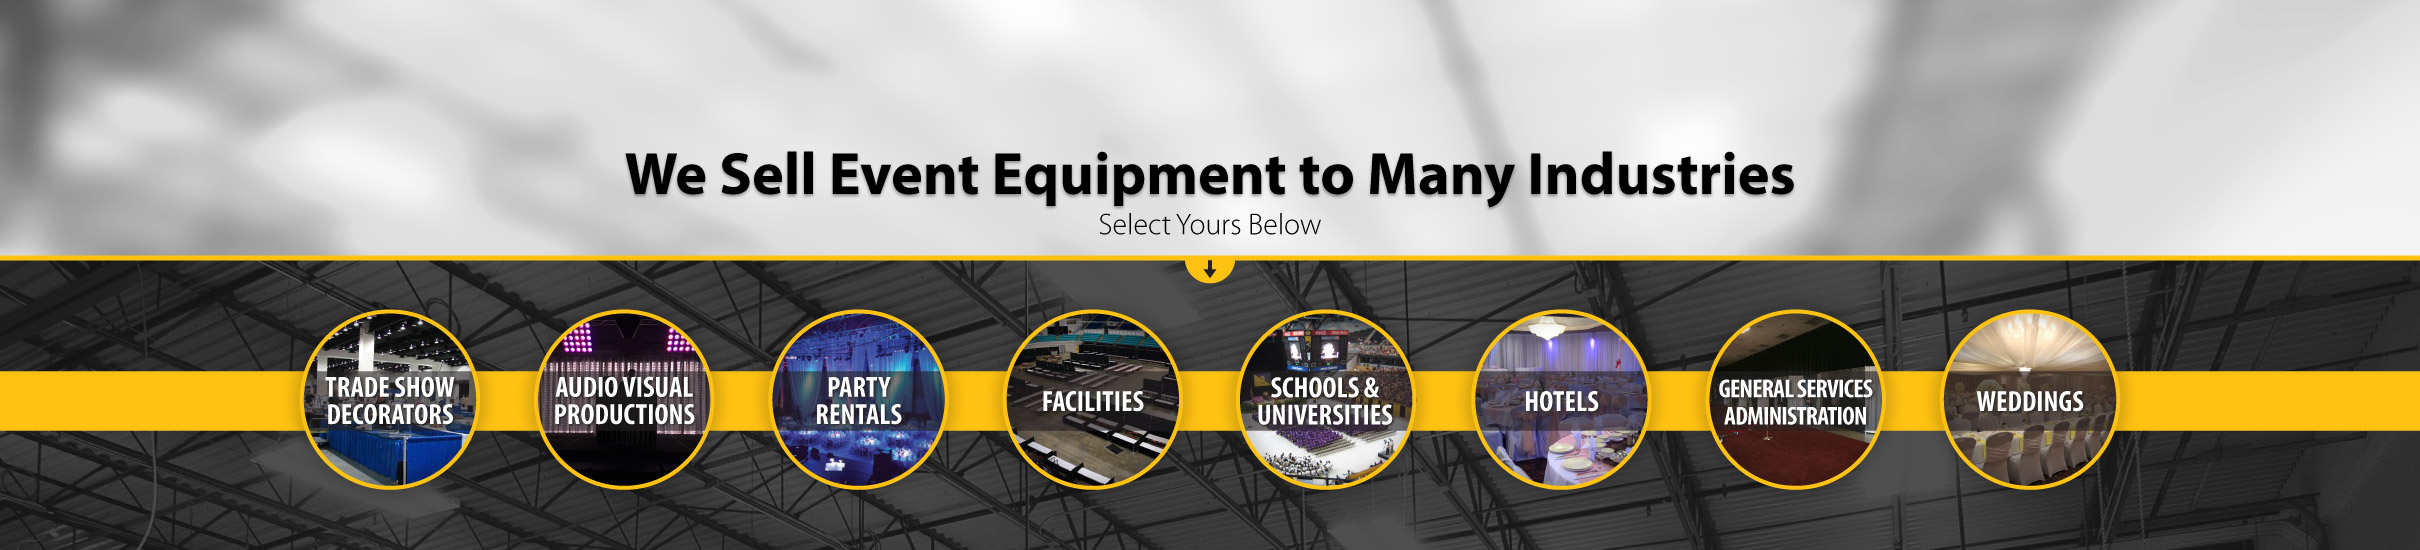 We sell event equipment to many industries